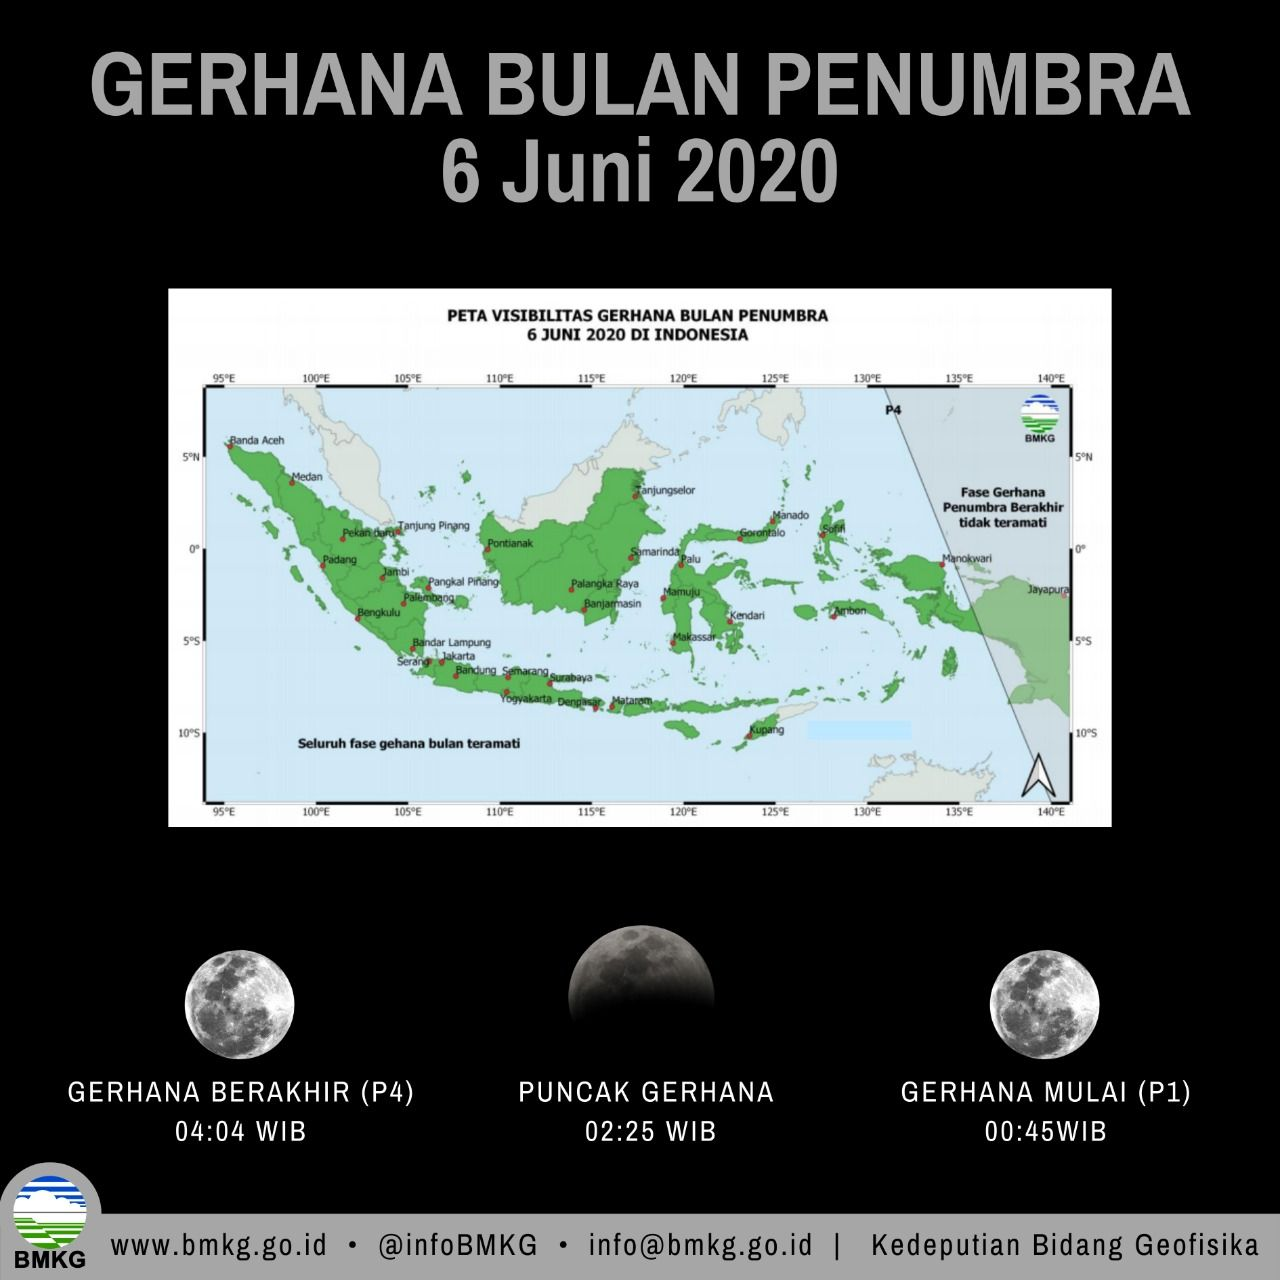 Gerhana bulan panumbra atau strawberry moon 6 Juni 2020.